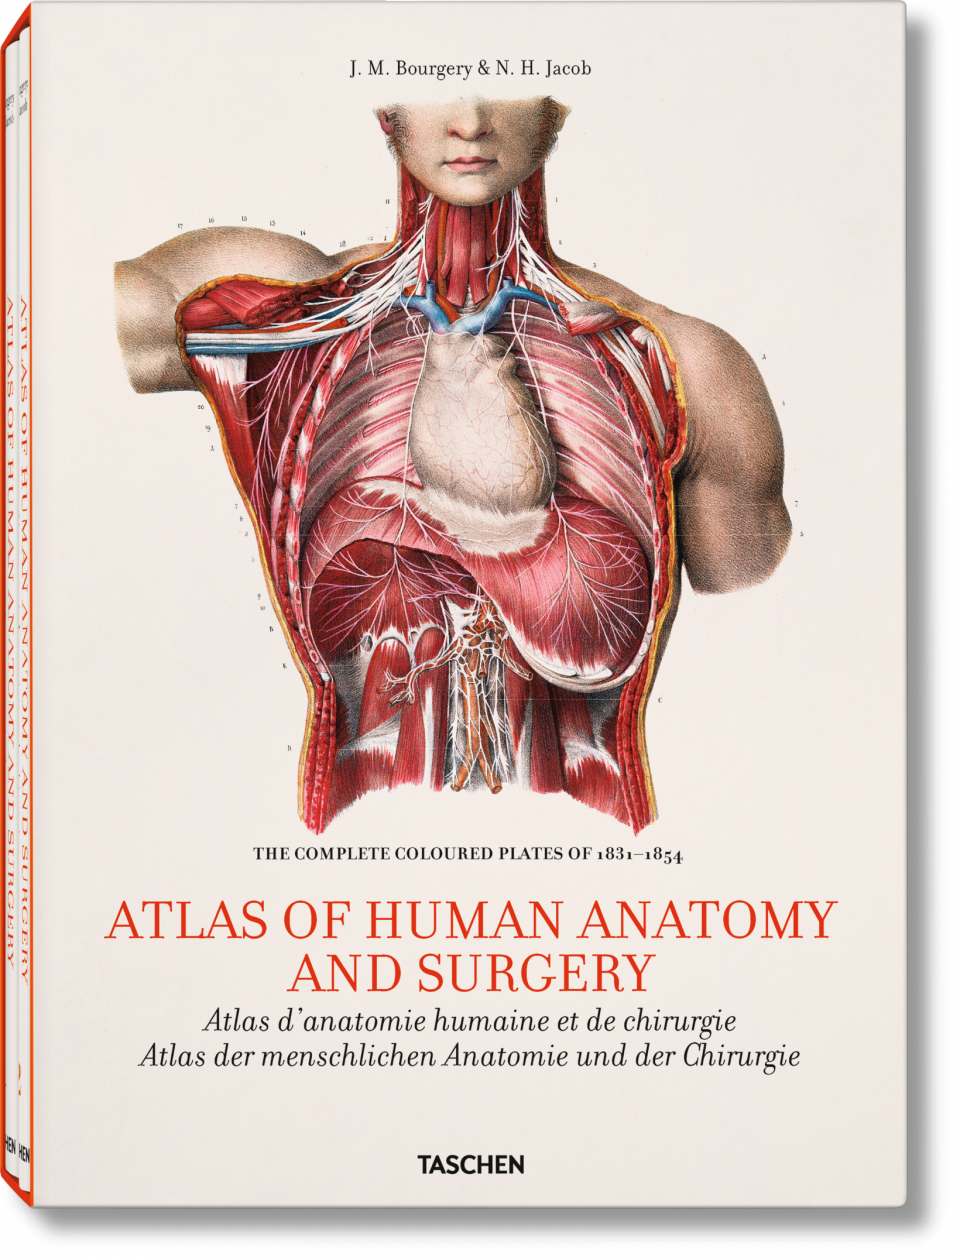 Bourgery. Atlas of Human Anatomy and Surgery | my pins | Pinterest ...